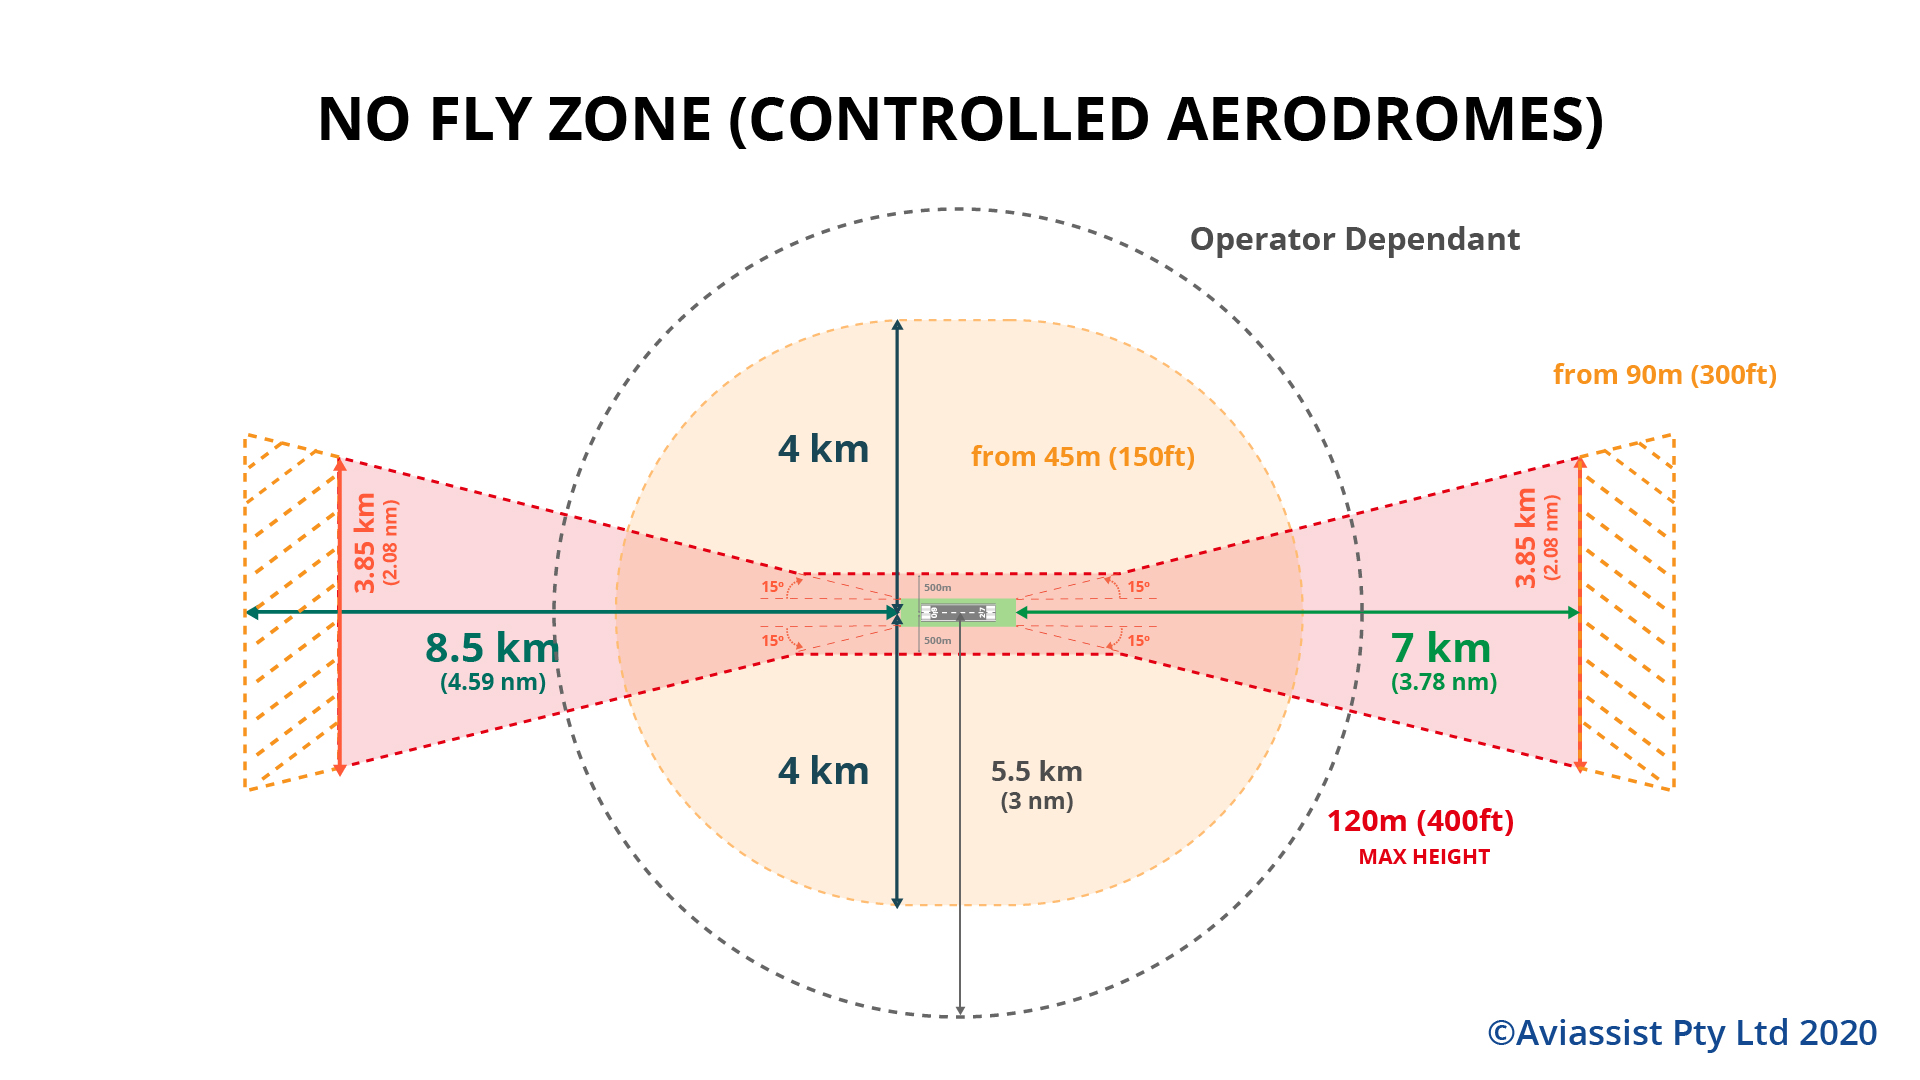 drone no fly zone controlled aerodrome